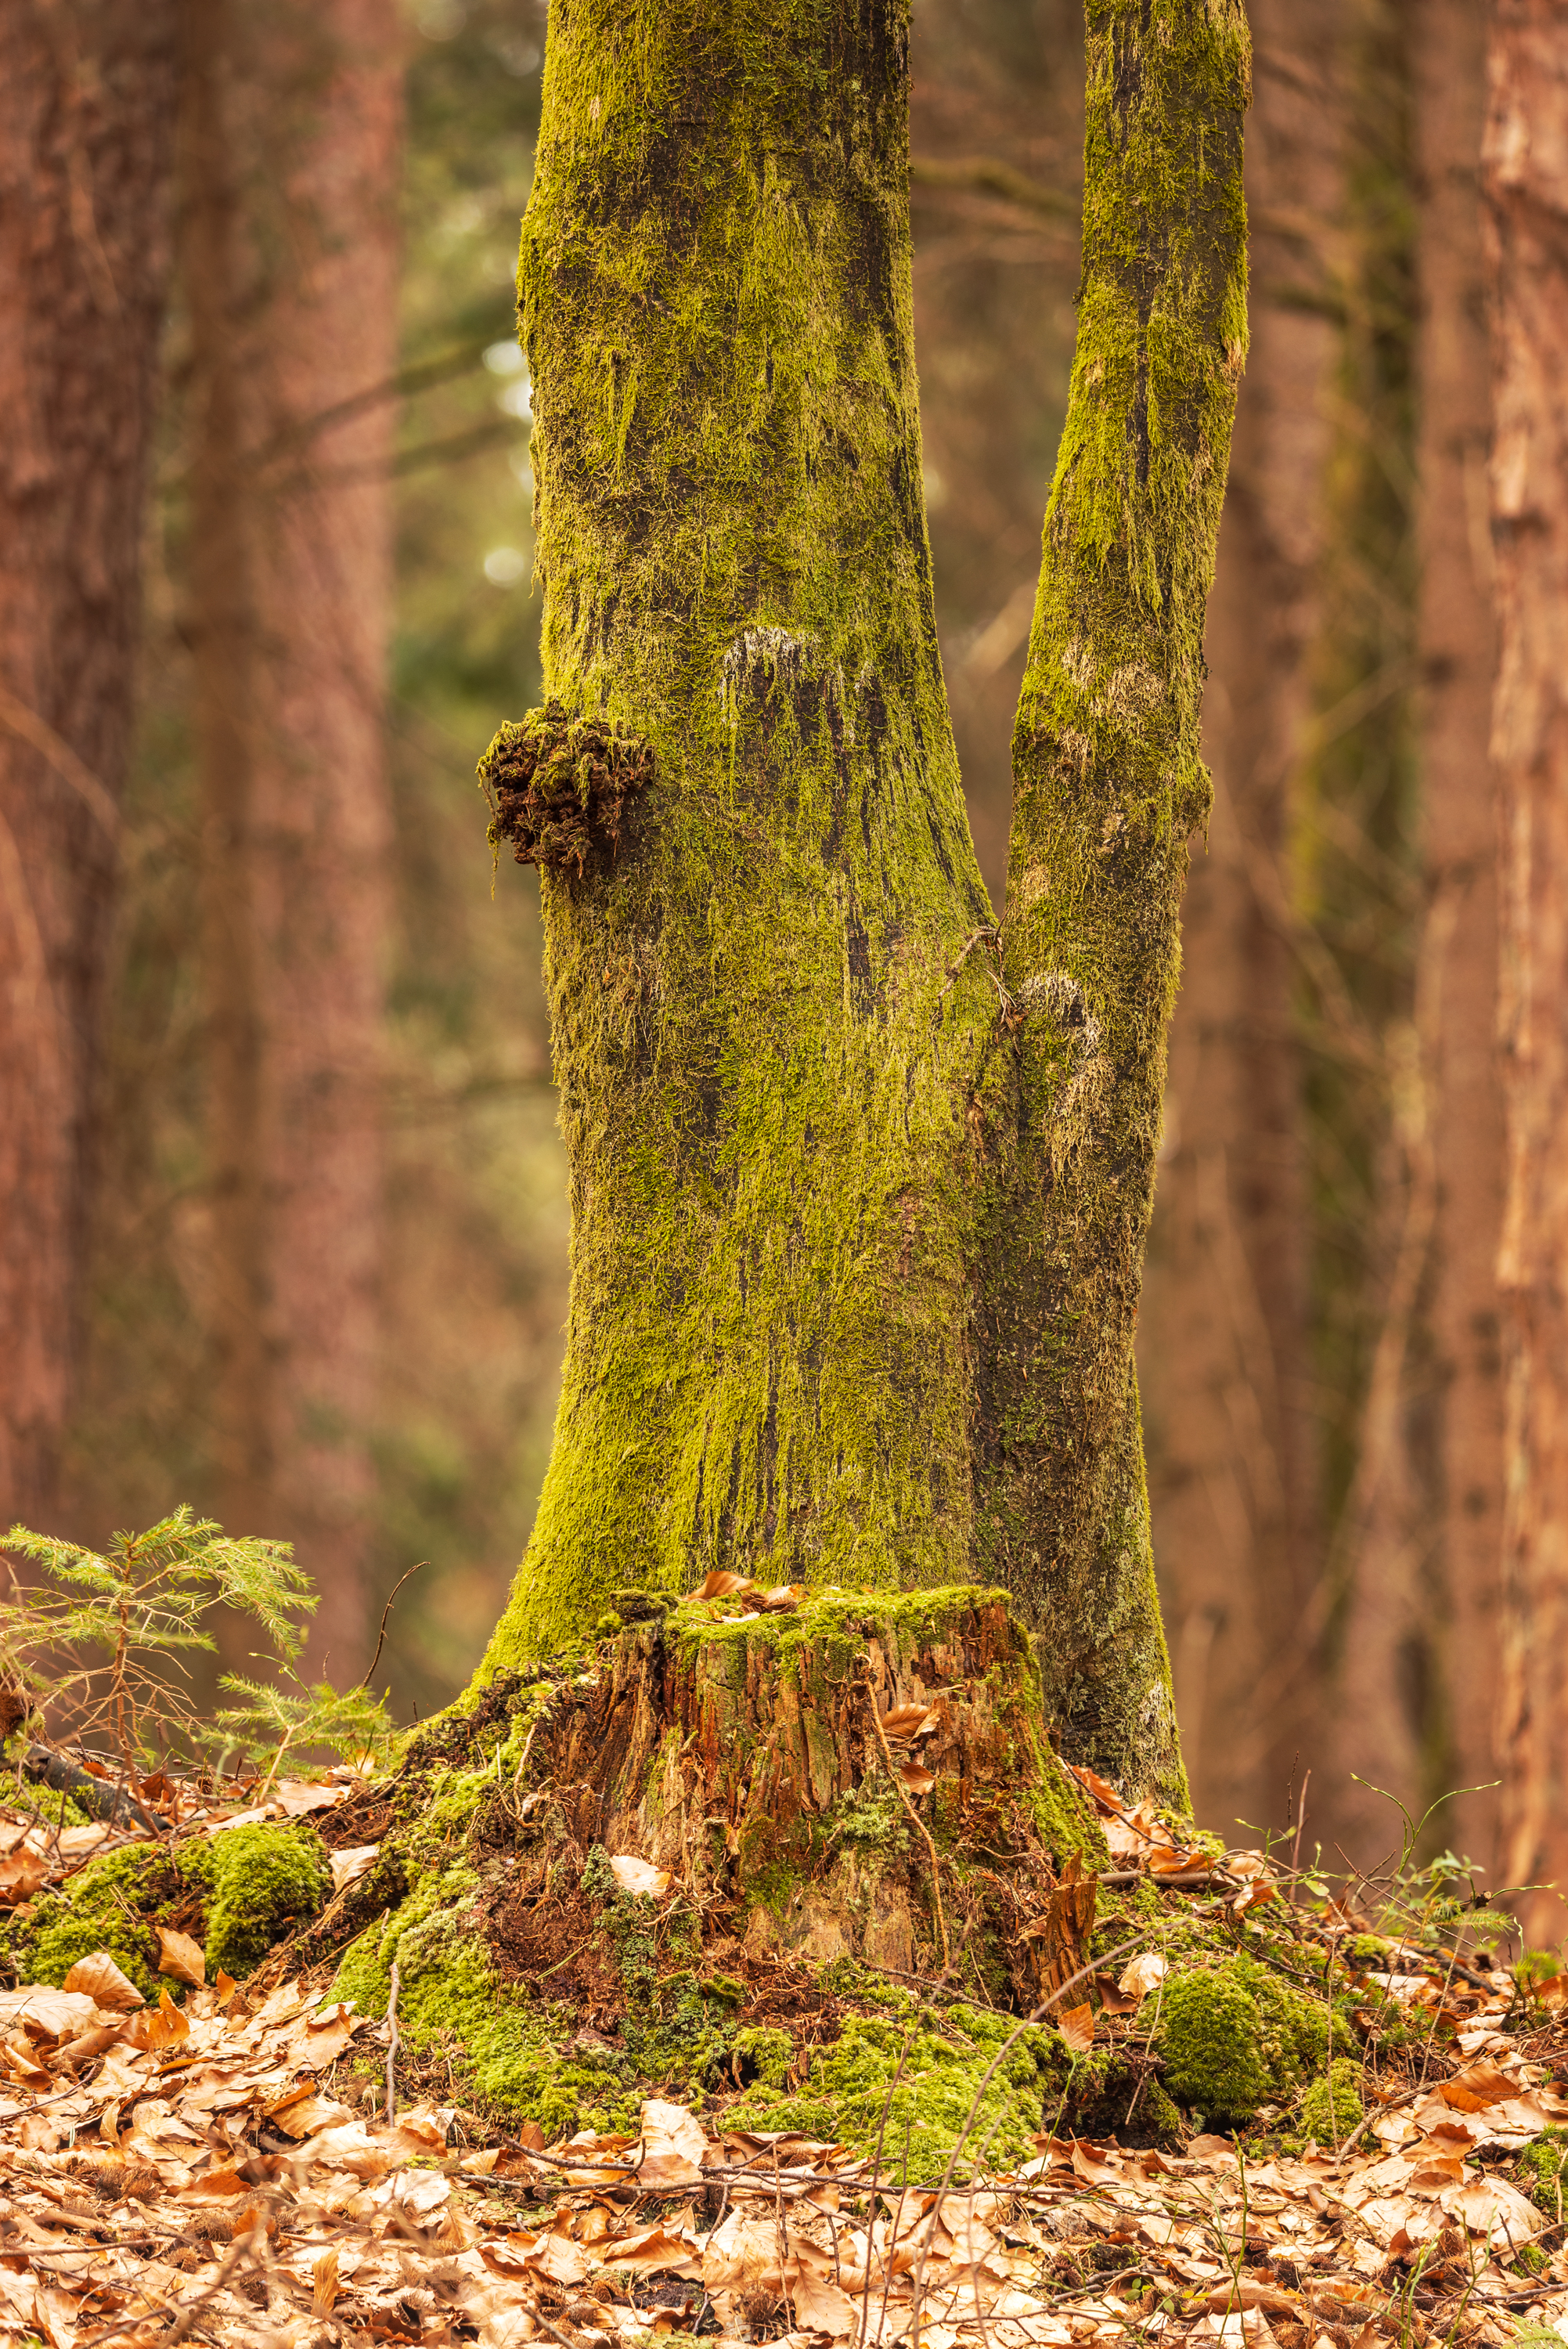 Lake Forstsee: mossy tree stump and beech tree